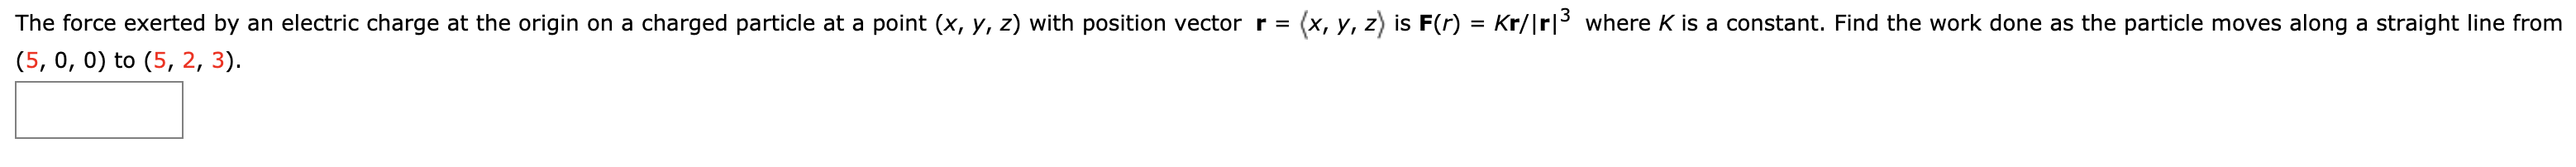 (x, y, z is F(r) = Kr/|rl3where K is a constant. Find the work done as the particle moves along a straight line from The force exerted by an electric charge at the origin on a charged particle at a point (x, y, z) with position vector r = (5, 0, 0) to (5, 2, 3)